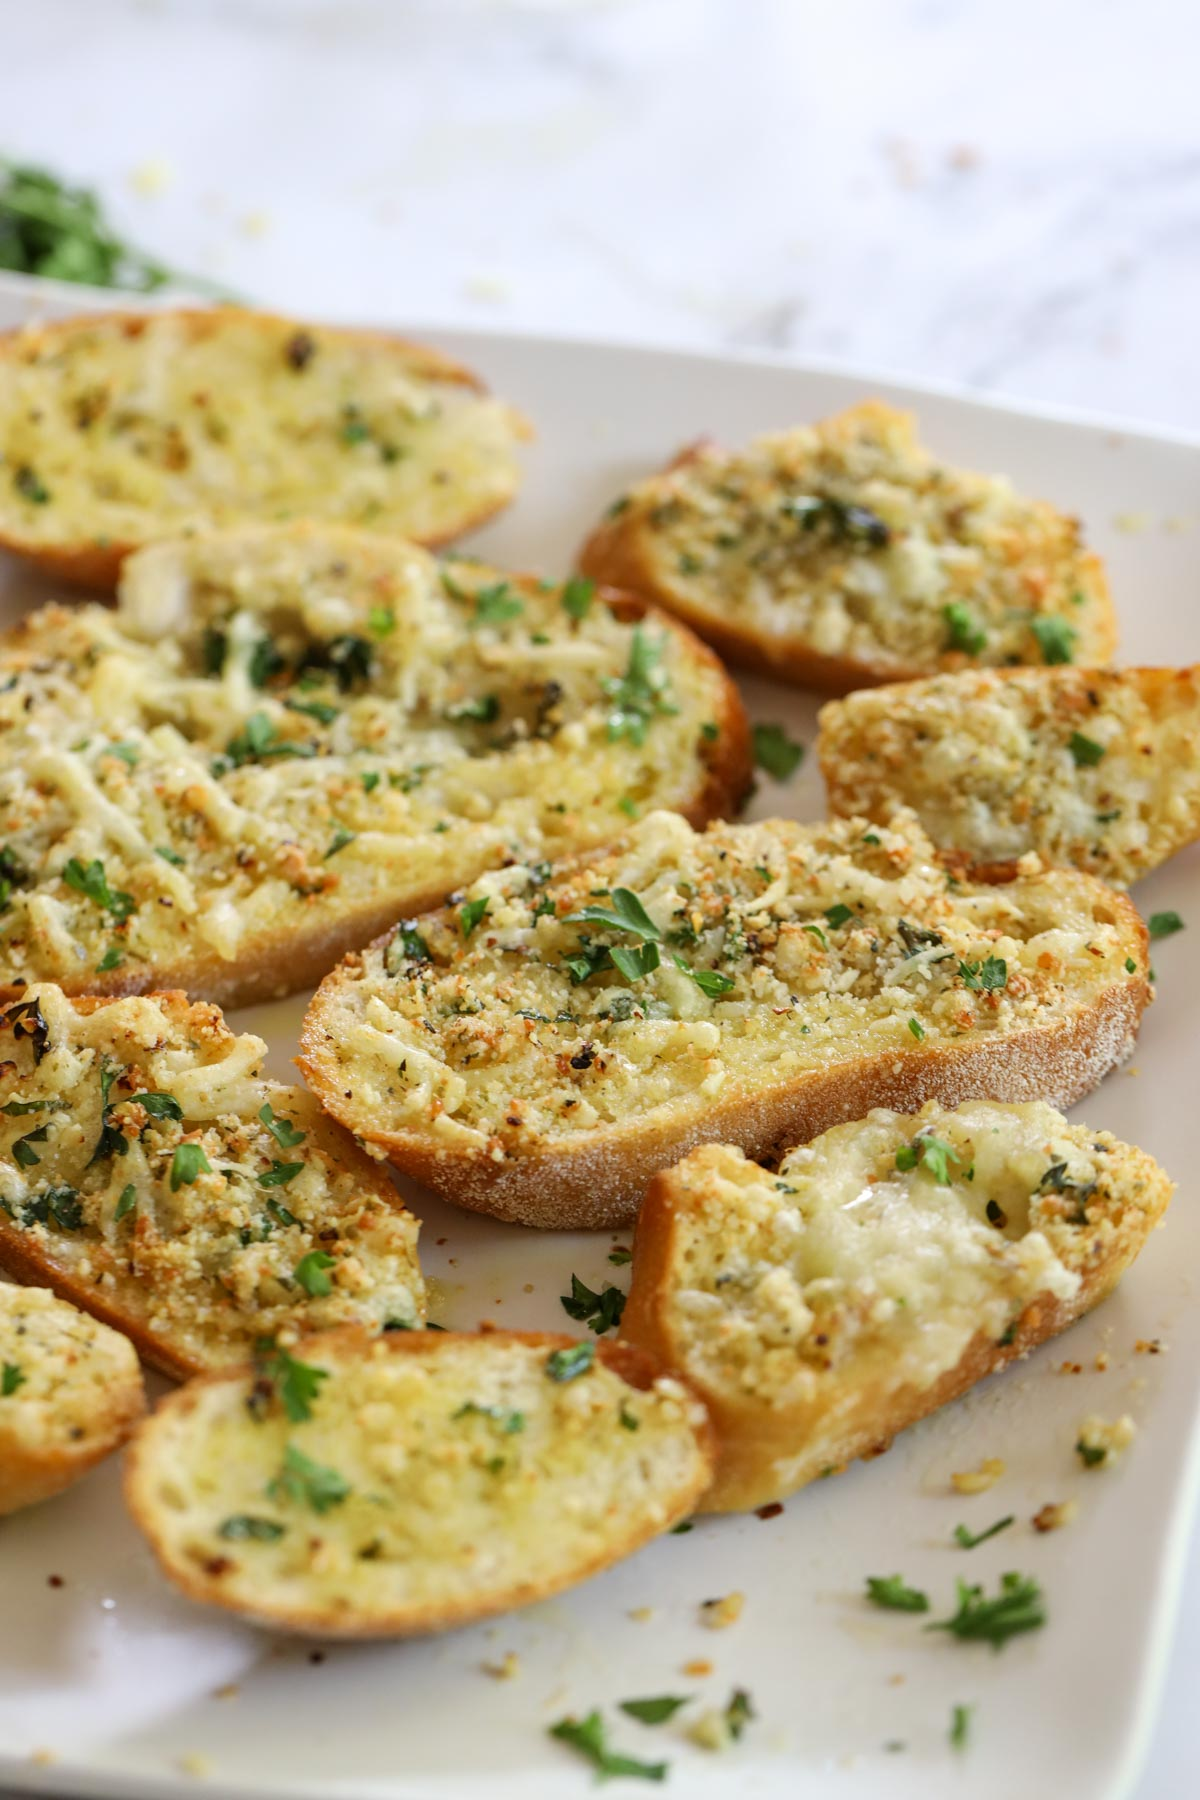 pieces of garlic bread lying on a plate